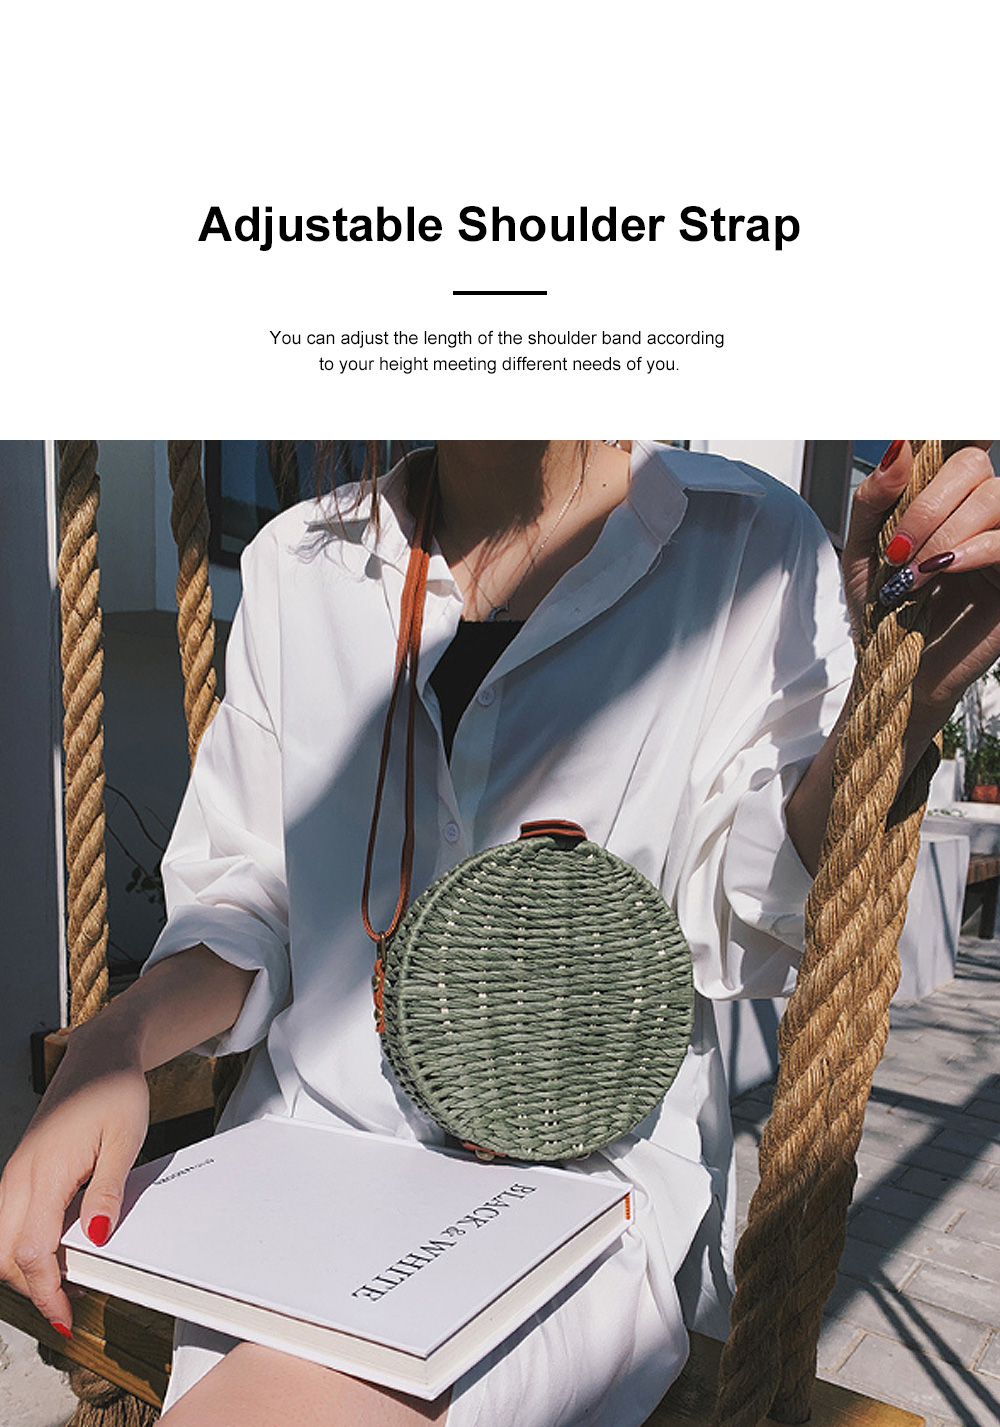 Simple Fancy Straw Shoulder Round Bag for Ladies, Beach Vacation Holiday National Style Women Shoulder Bag 1